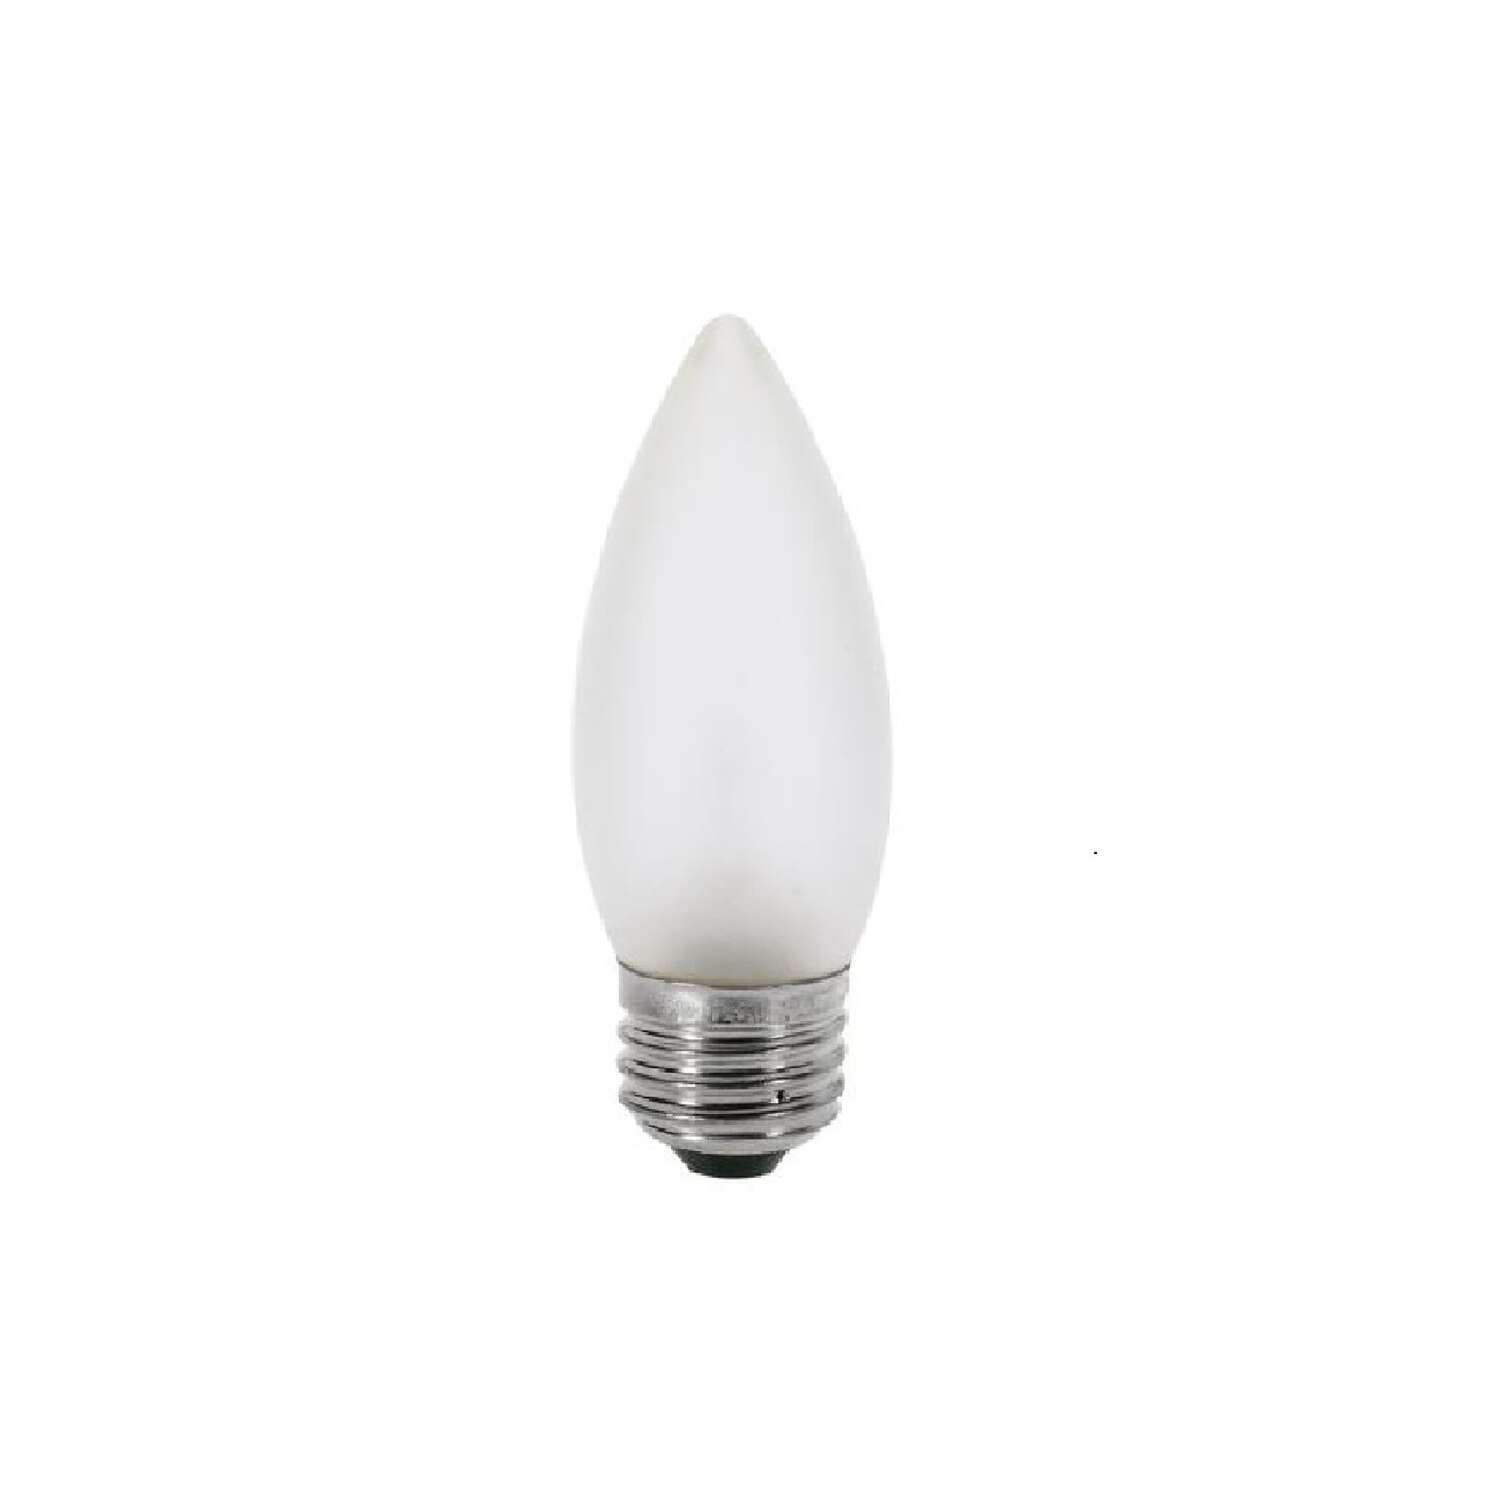 Satco  LED Filament  B11  E26 (Medium)  Filament LED Bulb  Warm White  40 Watt Equivalence 2 pk